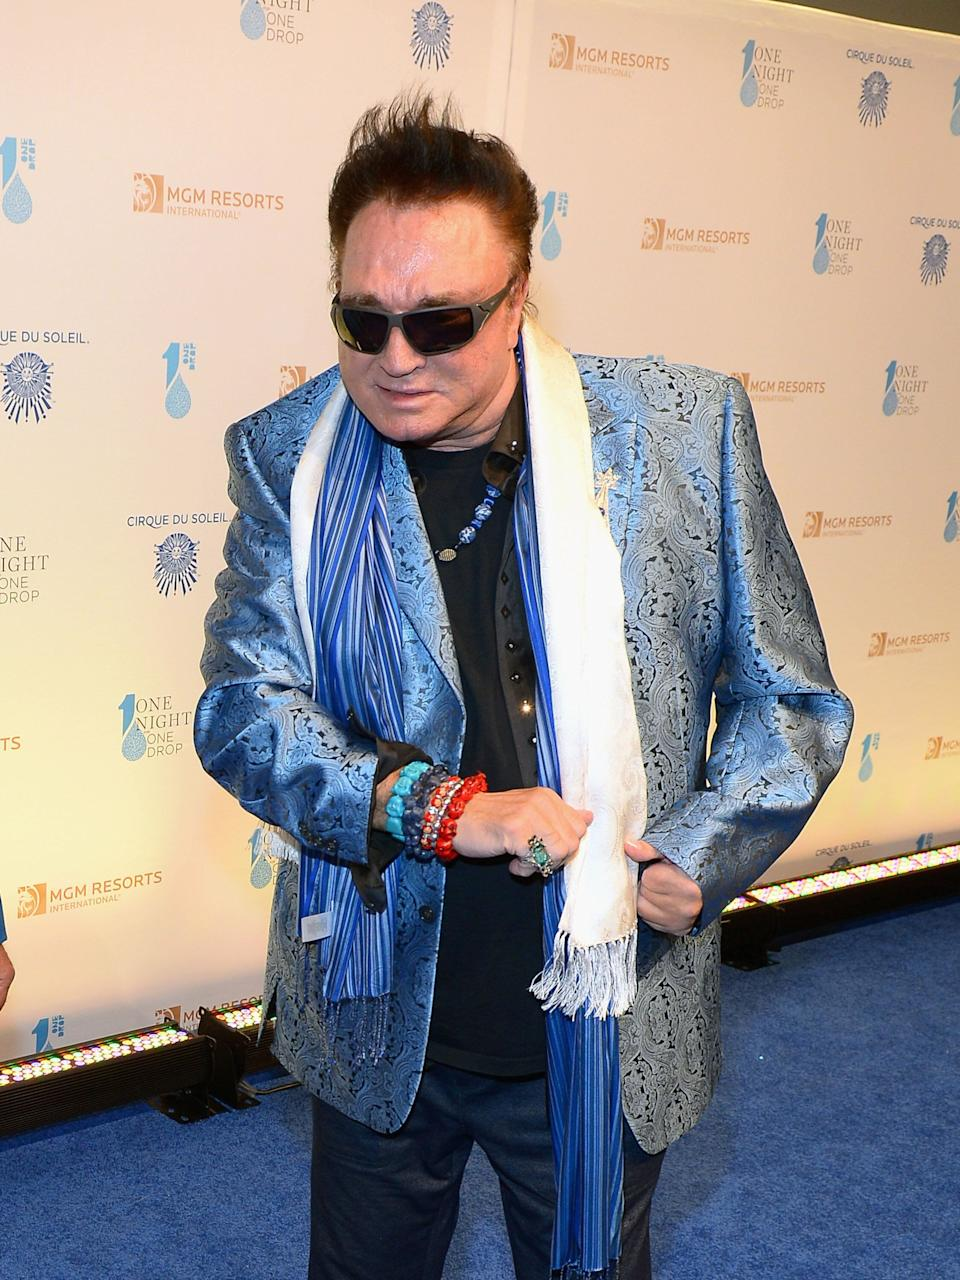 <strong>Roy Horn (1944 - 2020)<br /><br /></strong>One half of the duo Siegfried and Roy, the magician died from complications related to Covid-19, at the age of 75.